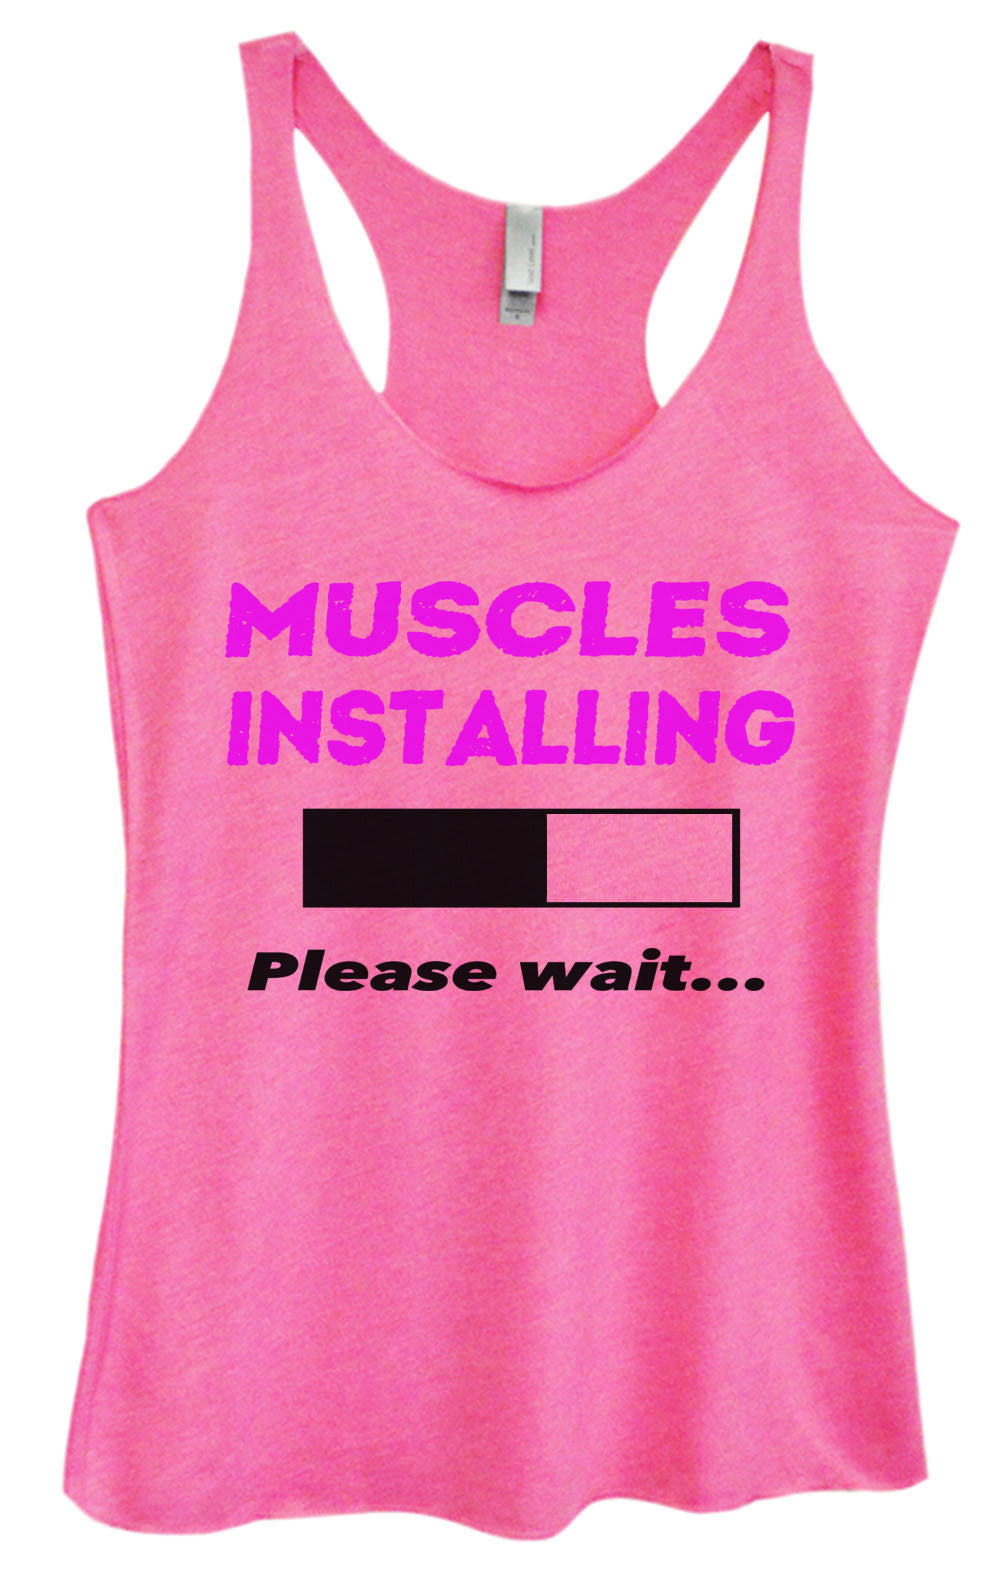 Womens Fashion Triblend Tank Top - Muscles Installing Please Wait... - Tri-762 - Funny Shirts Tank Tops Burnouts and Triblends  - 1